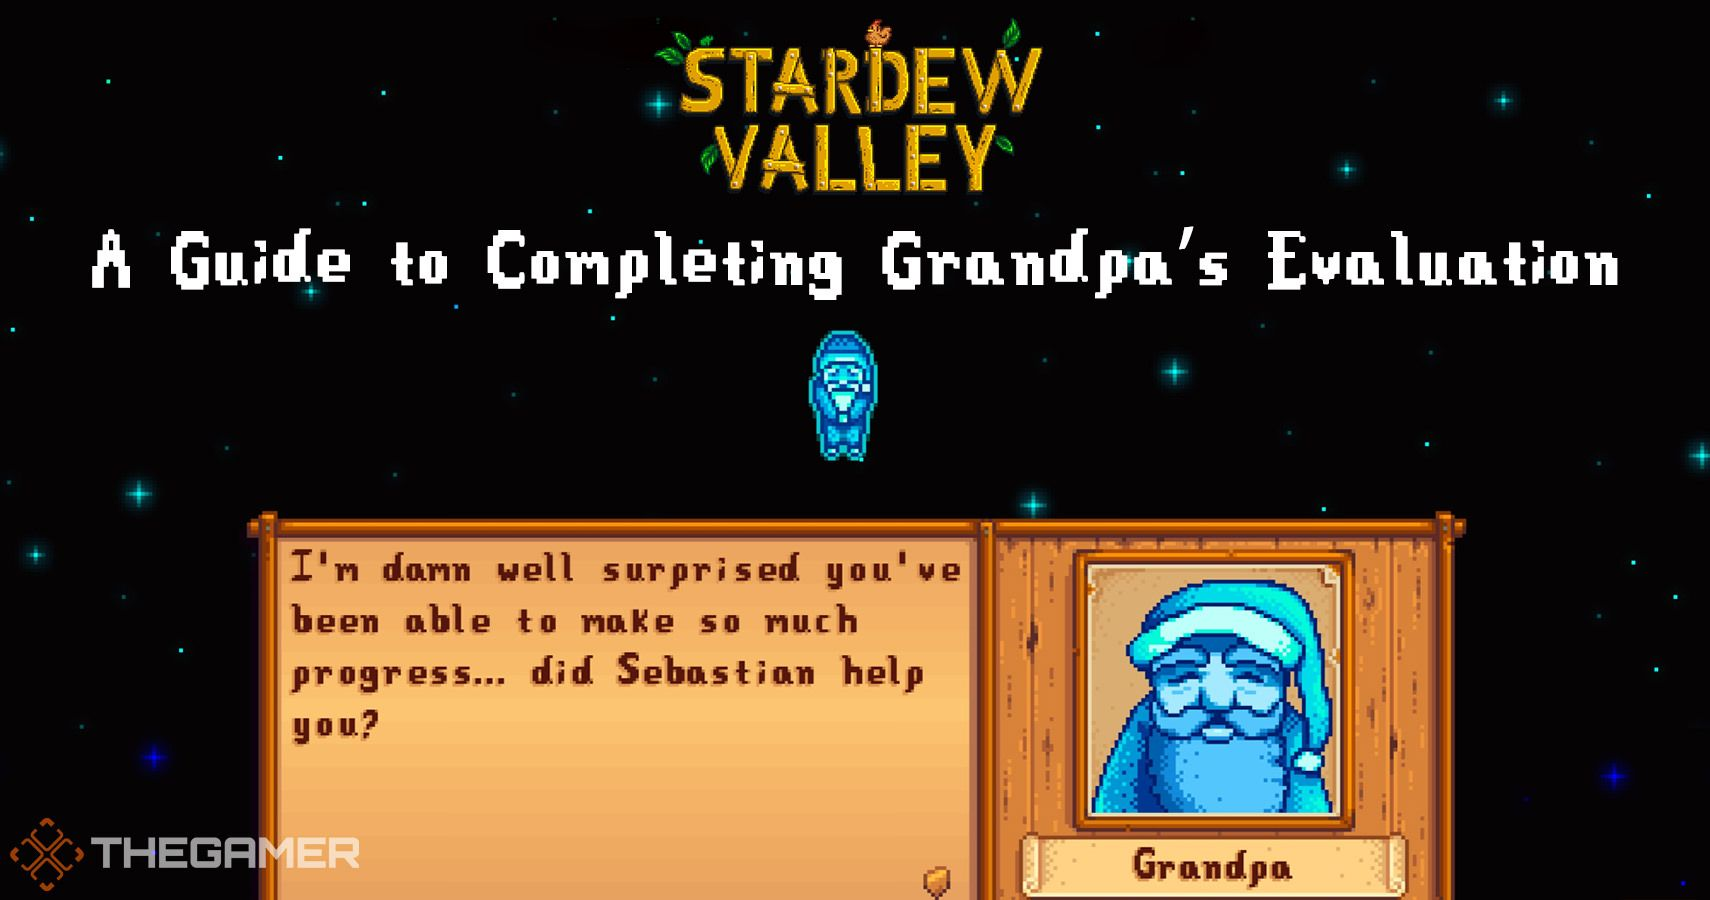 Stardew Valley: A Guide to Completing Grandpa's Evaluation